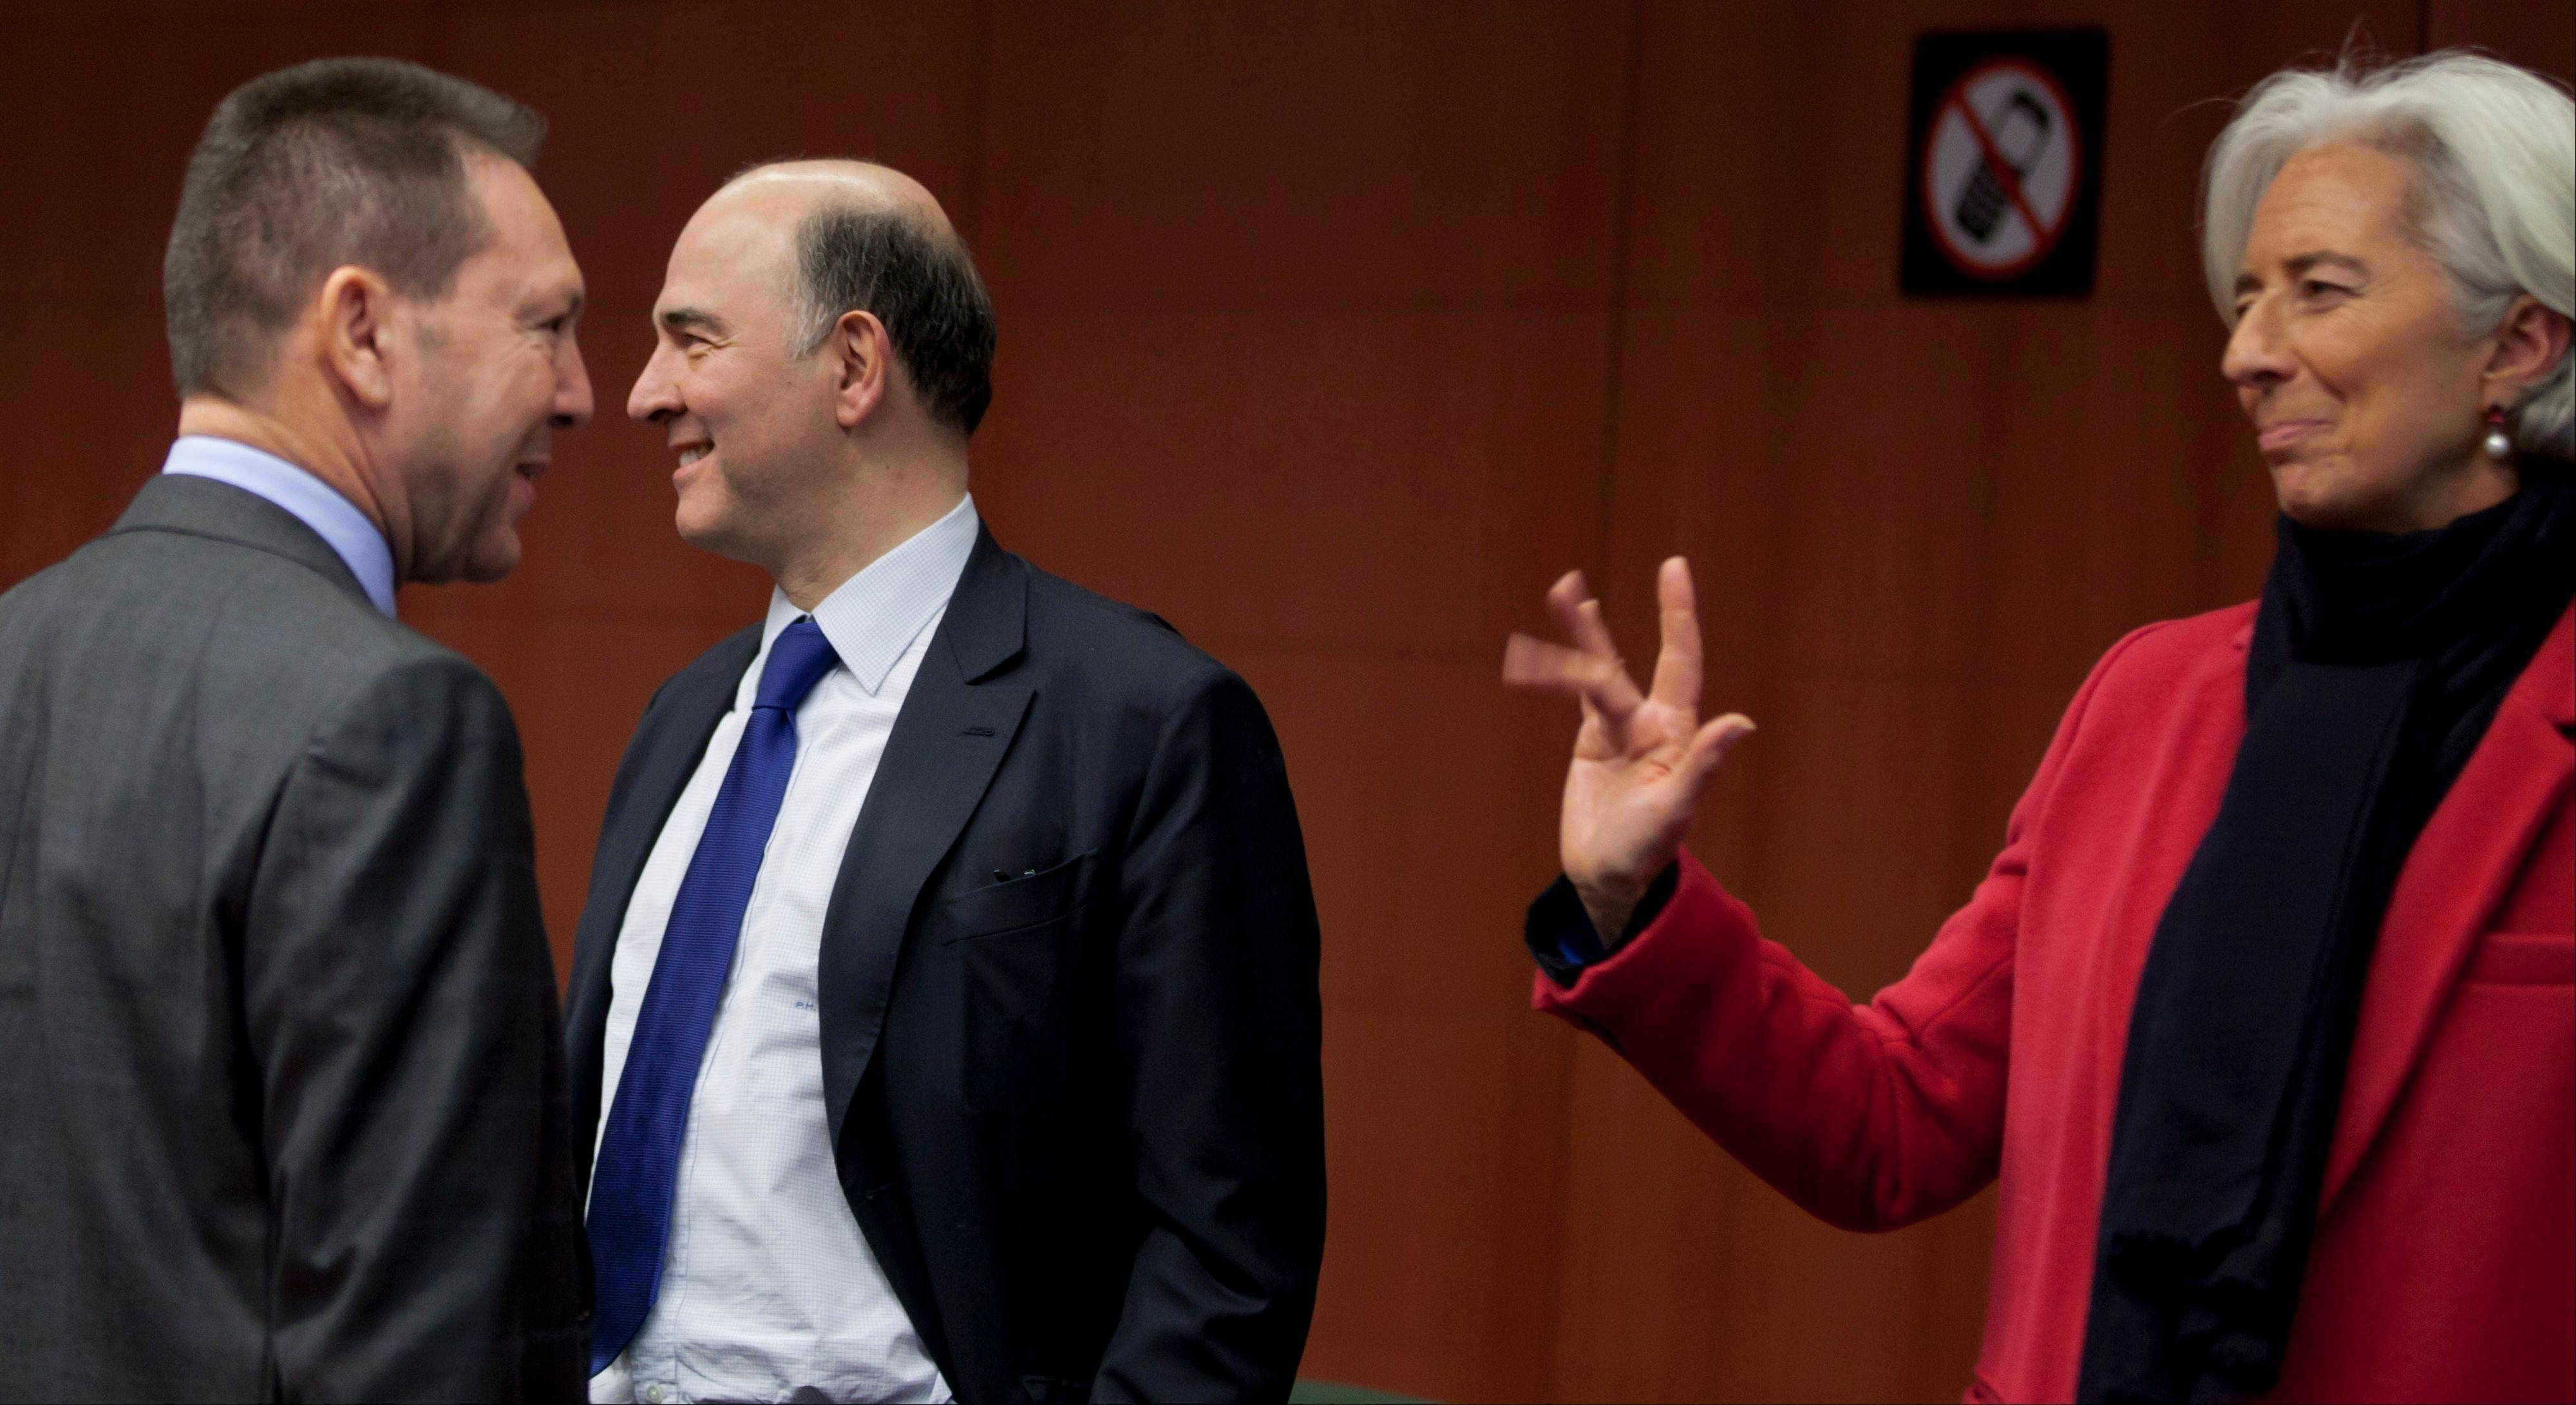 Managing Director of the International Monetary Fund Christine Lagarde, right, waves to Greek Finance Minister Yannis Stournaras, left, and French Finance Minister Pierre Moscovici during a meeting of eurogroup finance ministers in Brussels on Monday.